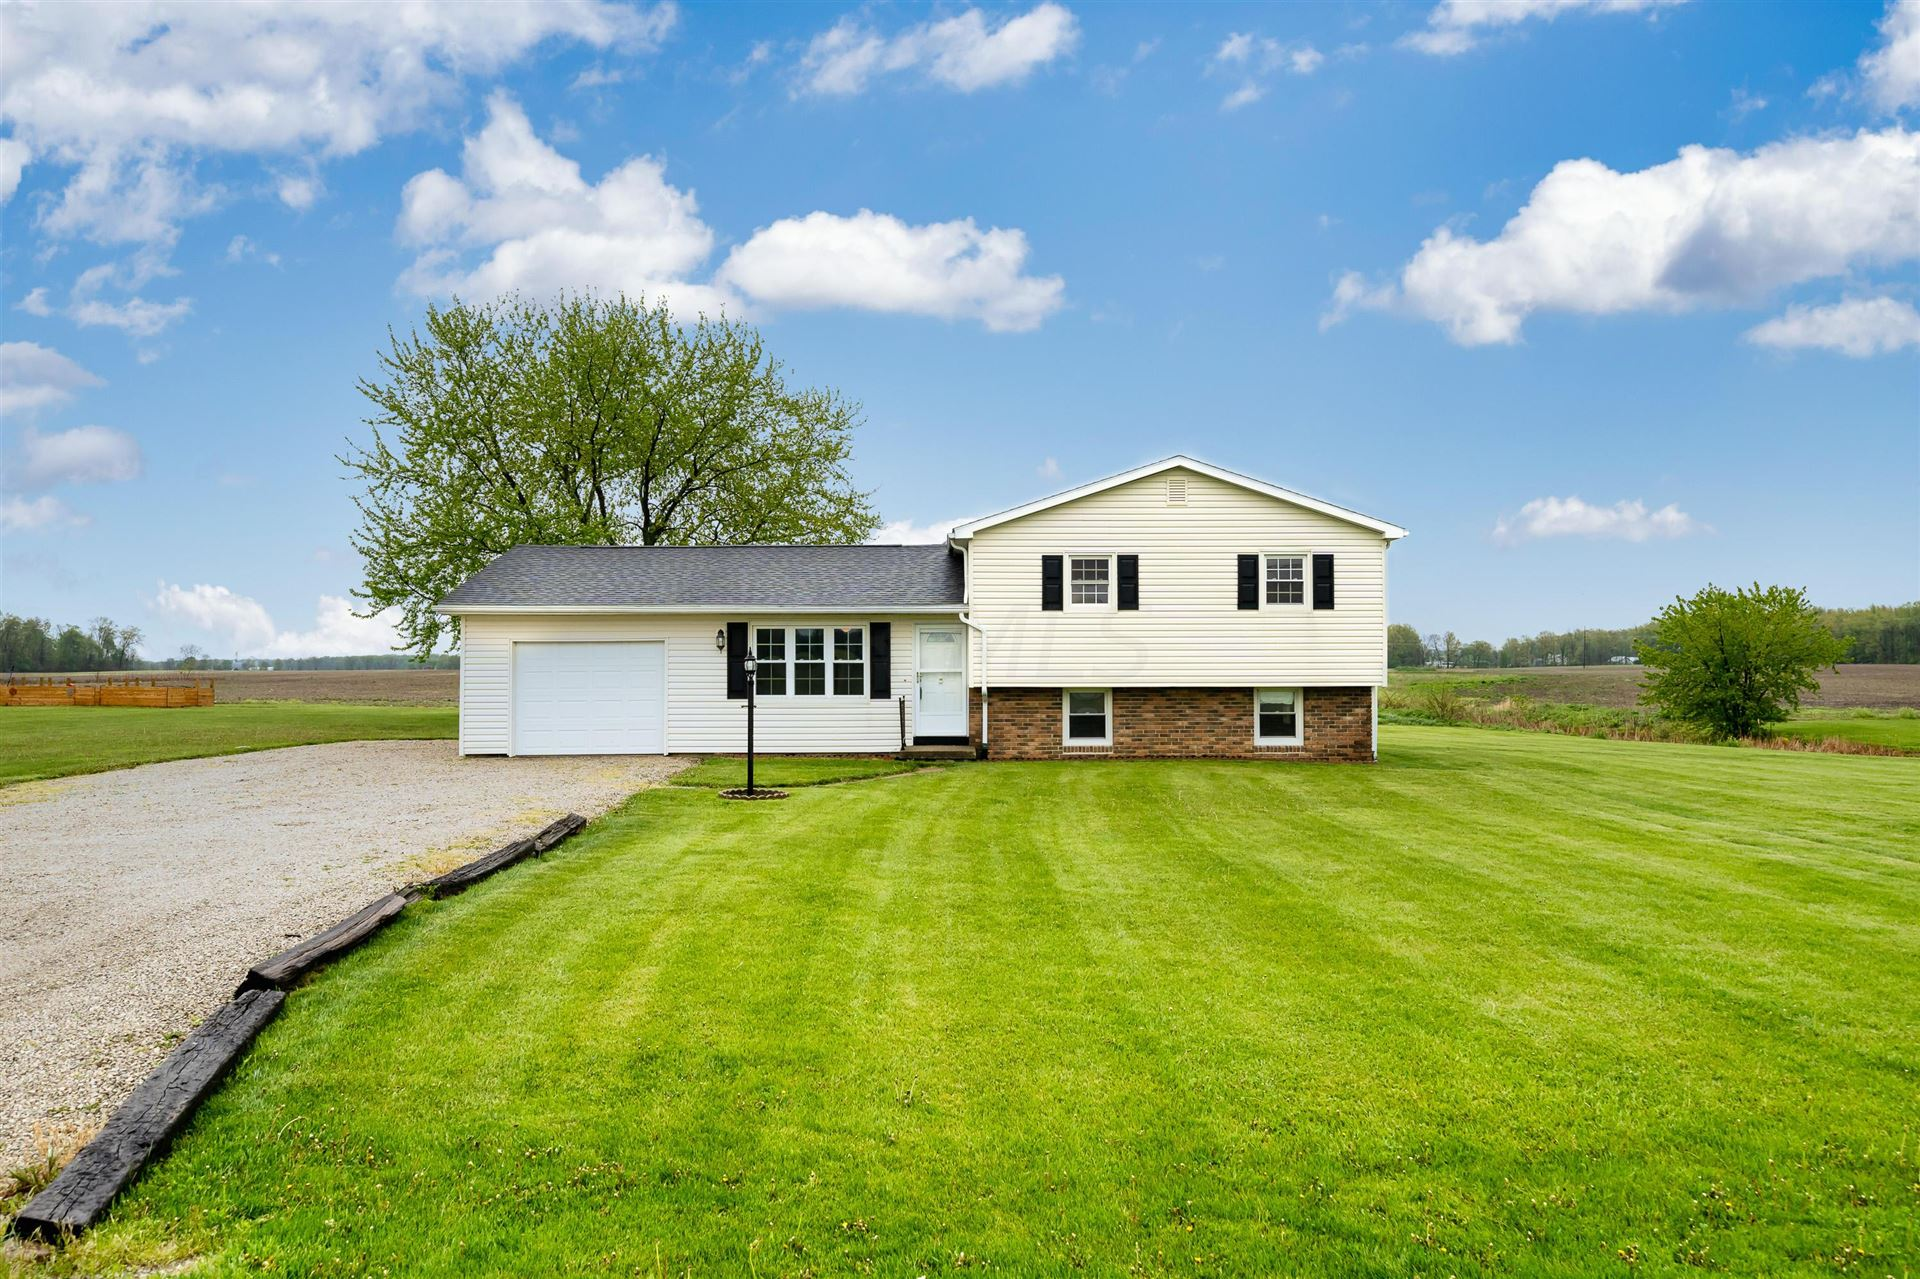 Photo for 2263 Township Rd 21, Ashley, OH 43003 (MLS # 221014333)